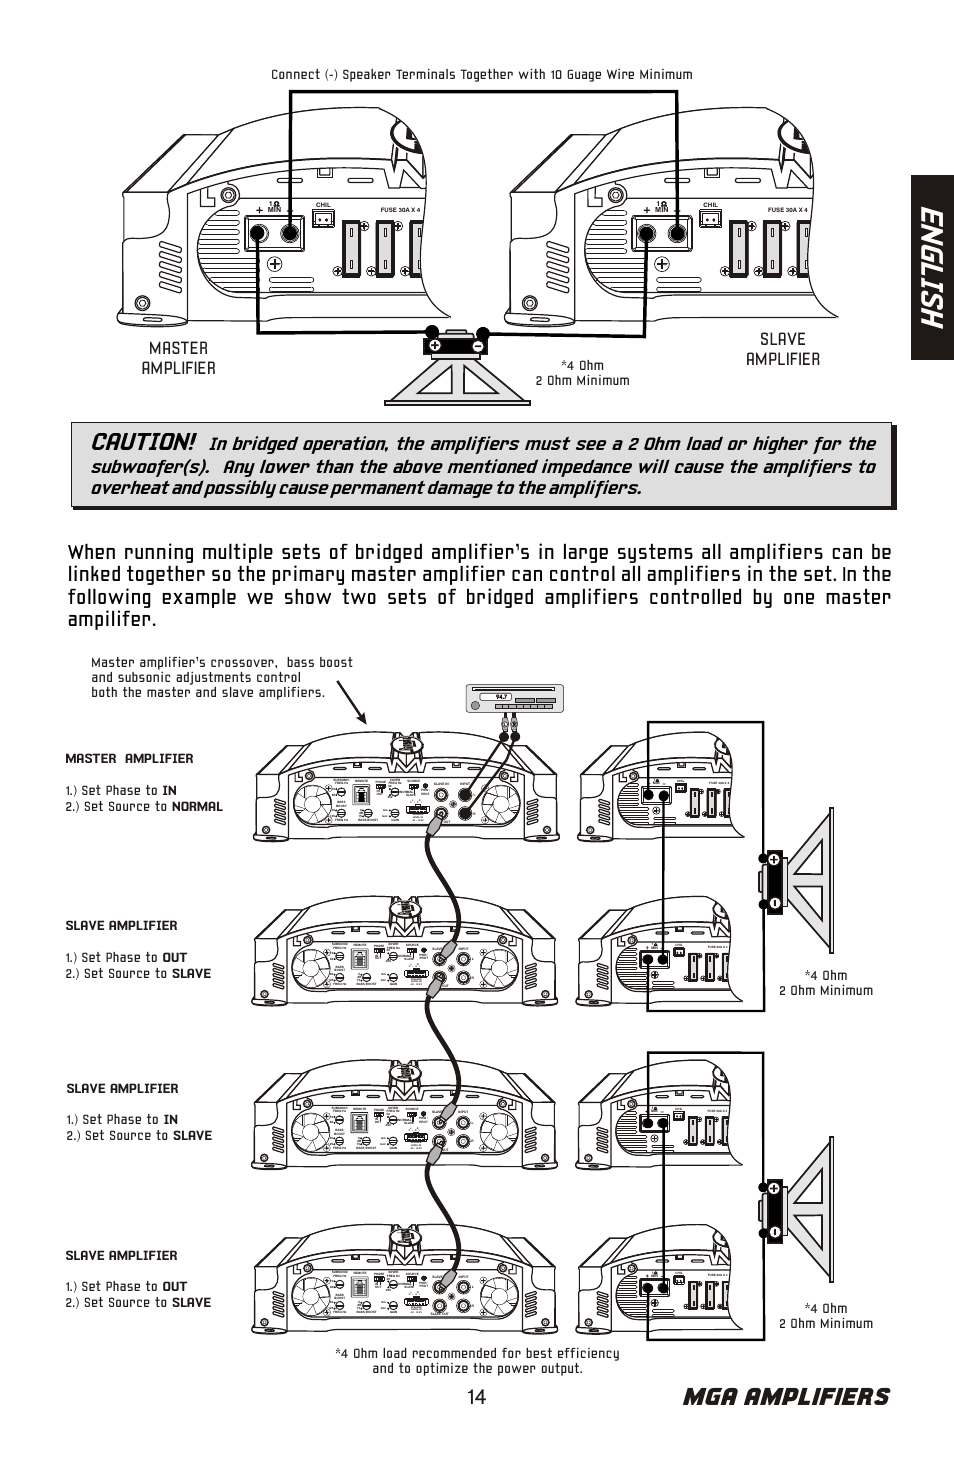 Bazooka Amp Wiring Diagram En Gl Is H Mga Amplifiers Caution Phat Tuesday Mga11500h Master Amplifier Slave